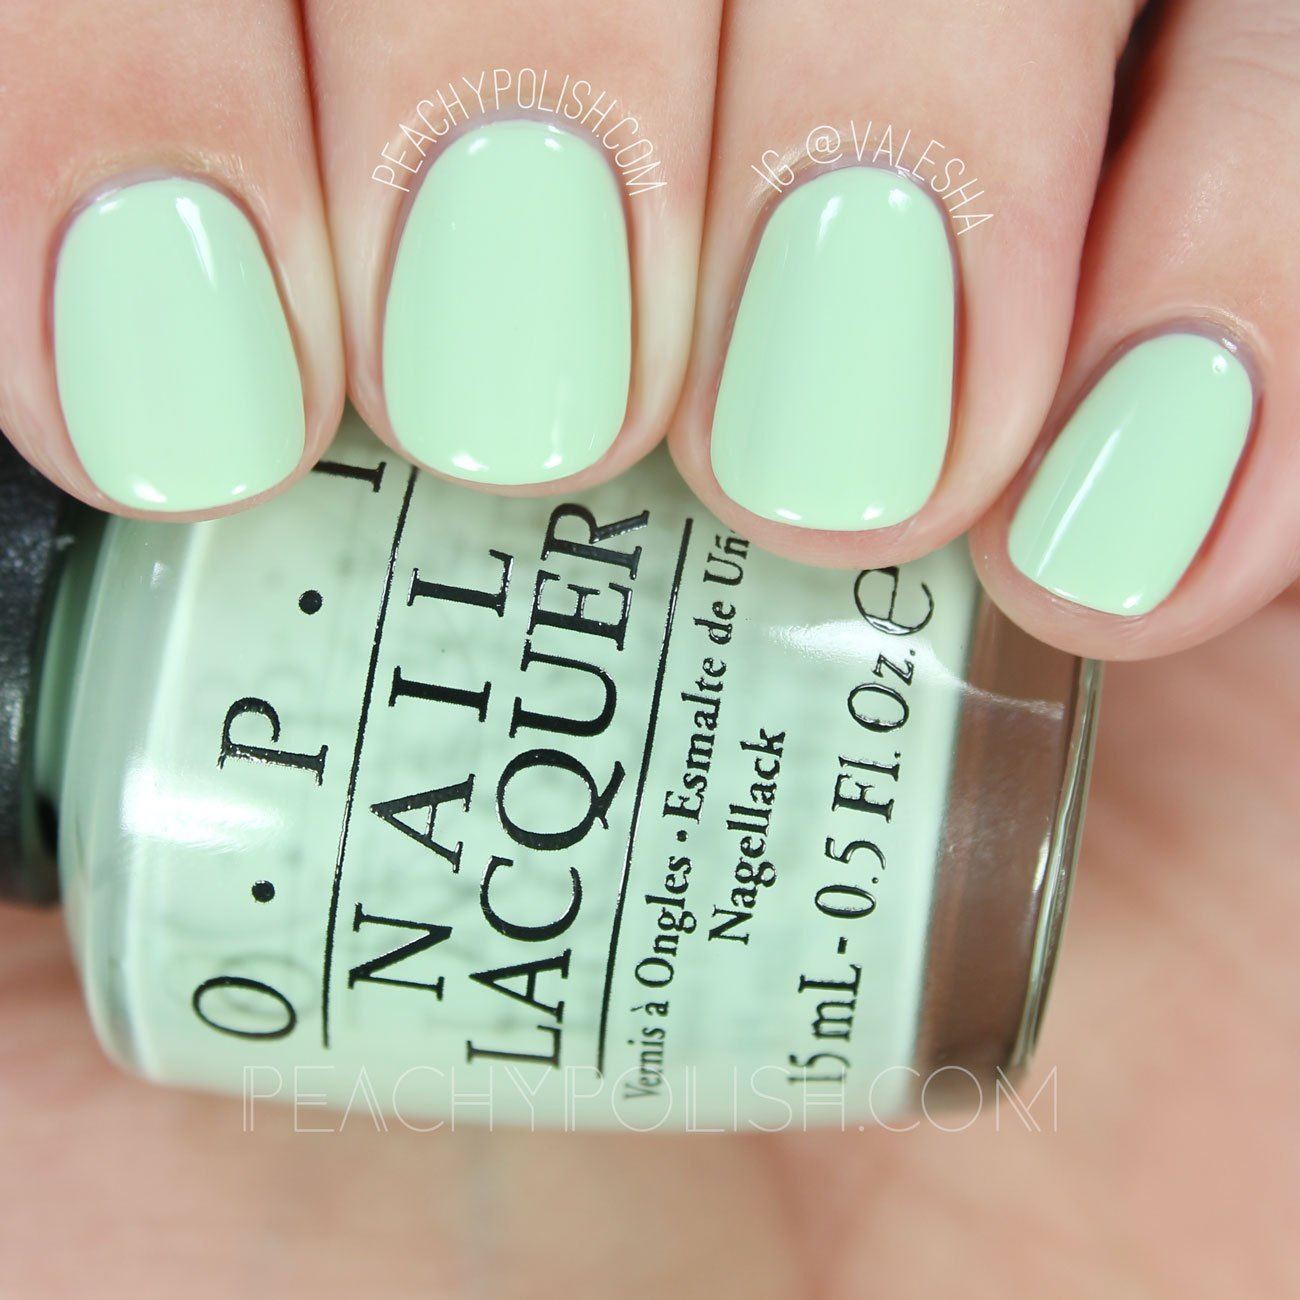 OPI This Cost Me A Mint | Spring 2016 SoftShades Collection | Peachy ...